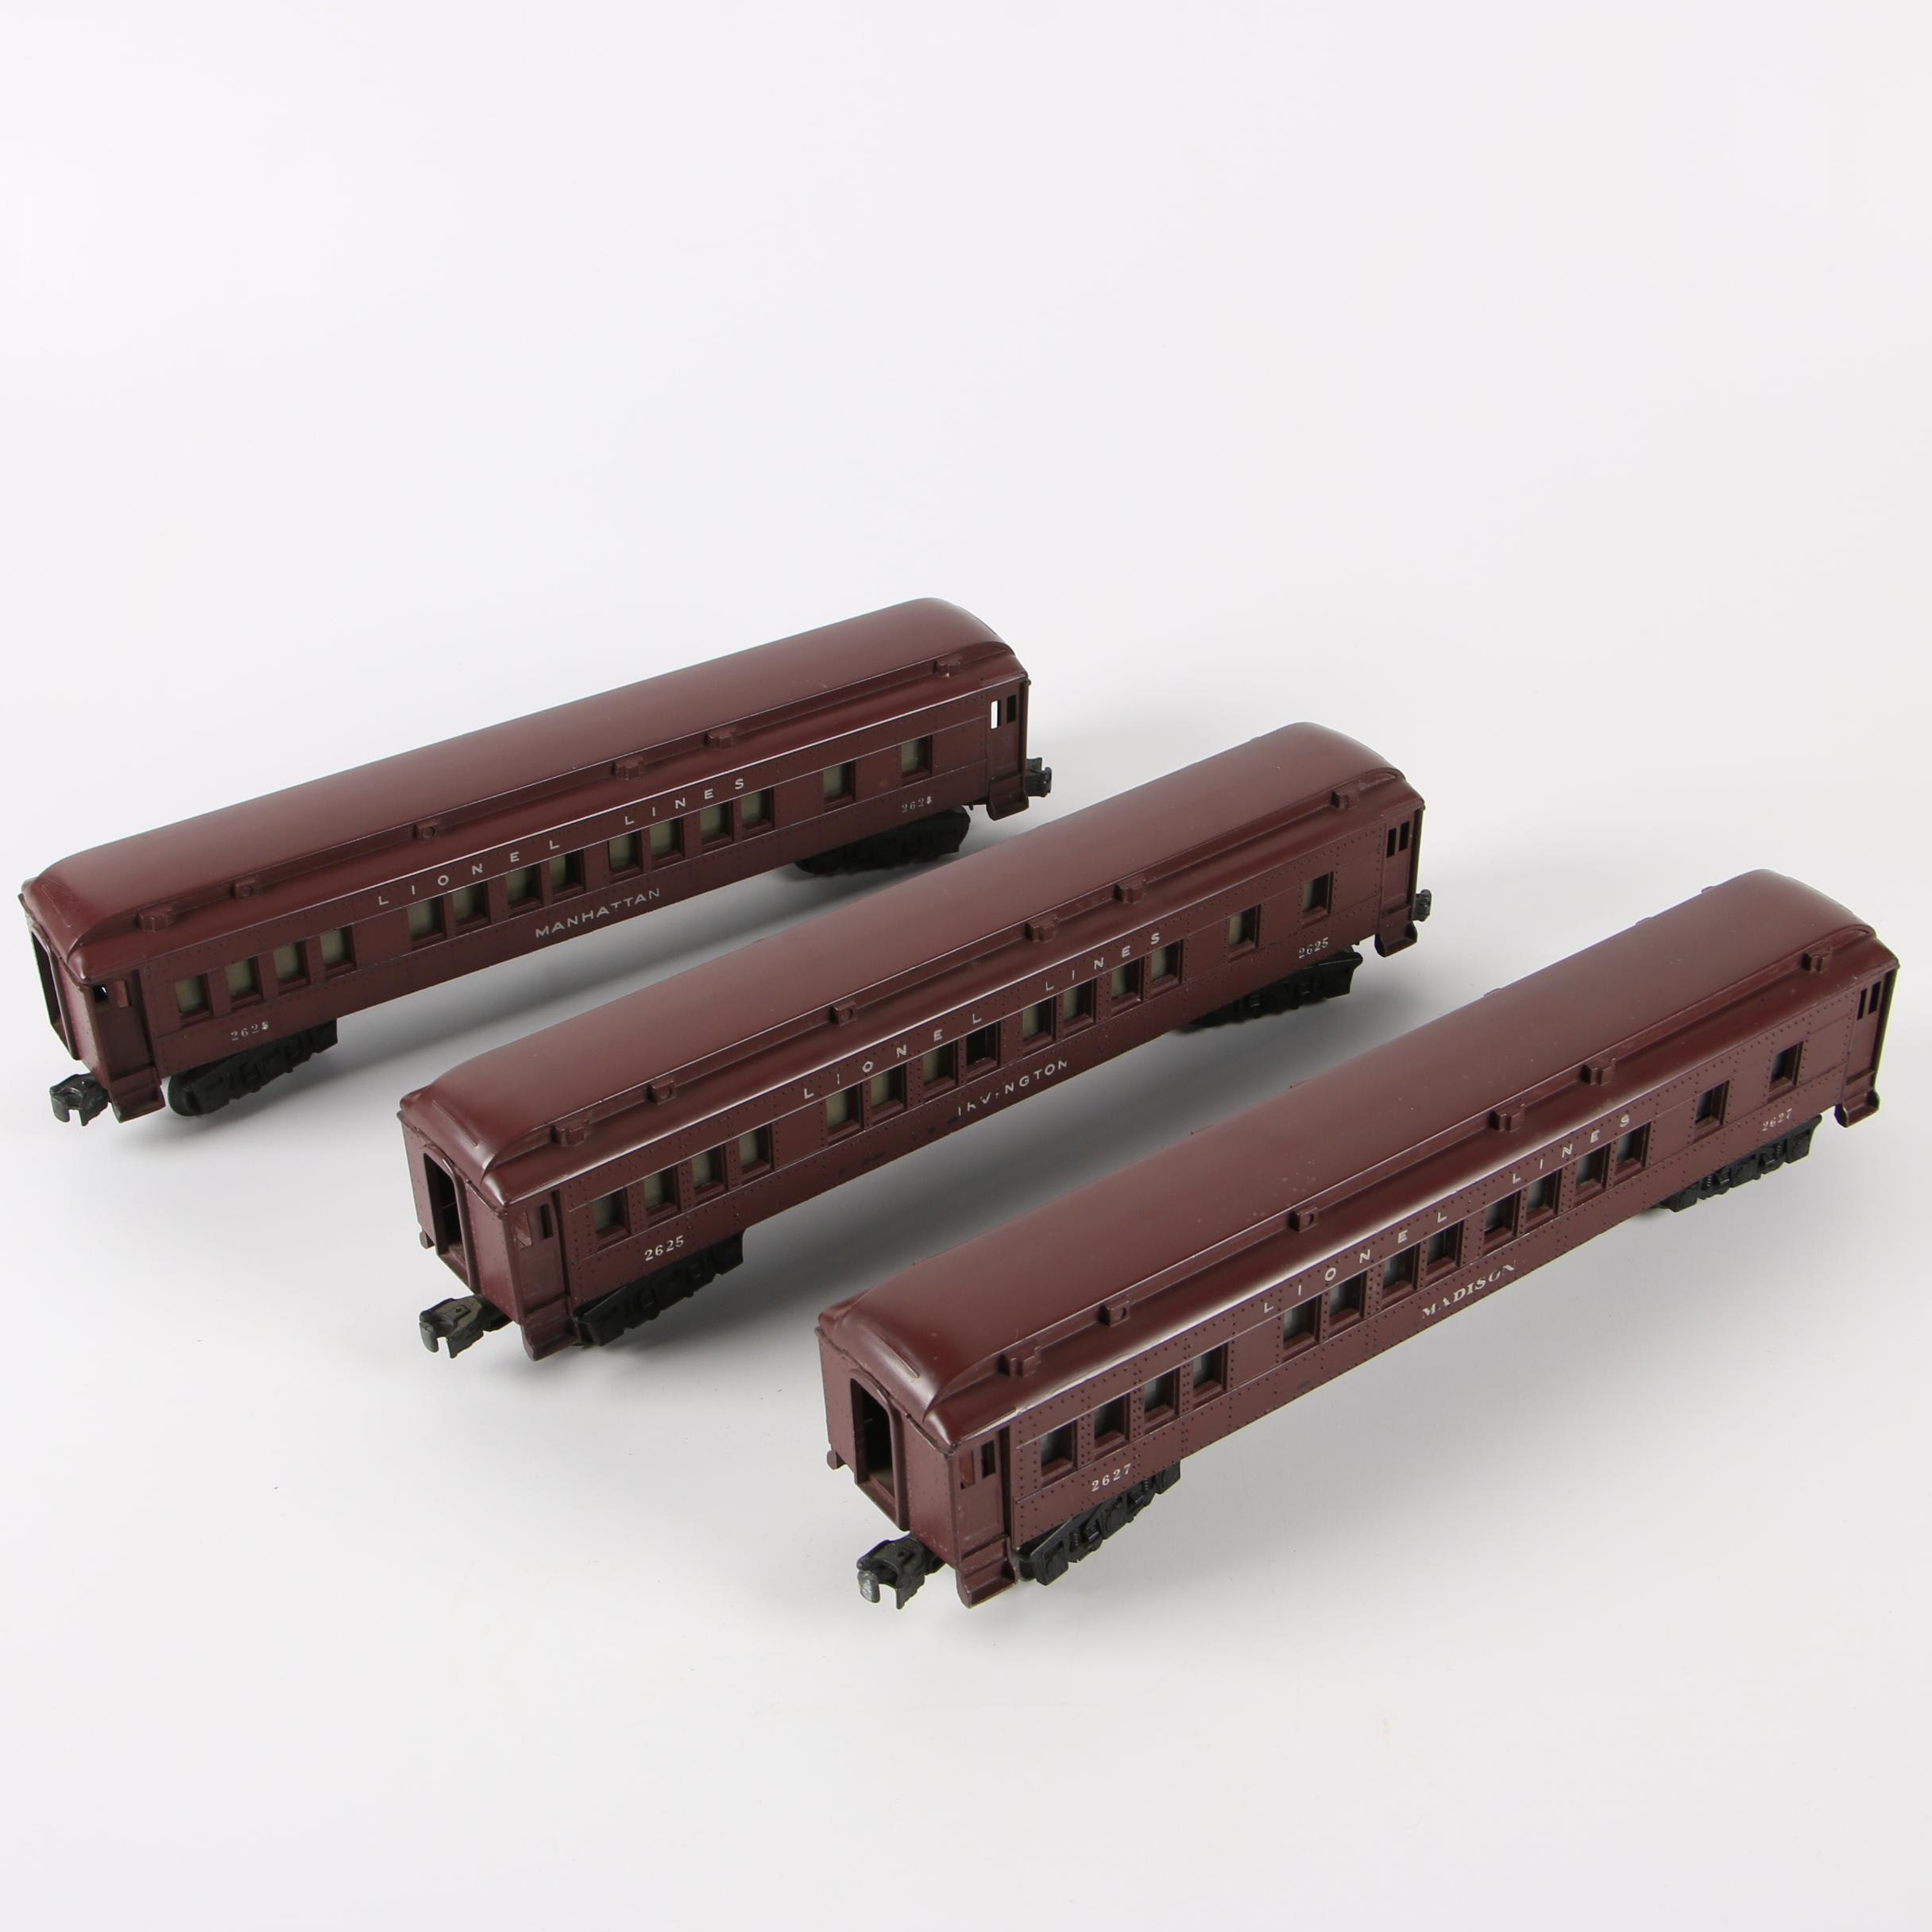 Lionel Passenger Train Cars, Late 1940s-Early 1950s